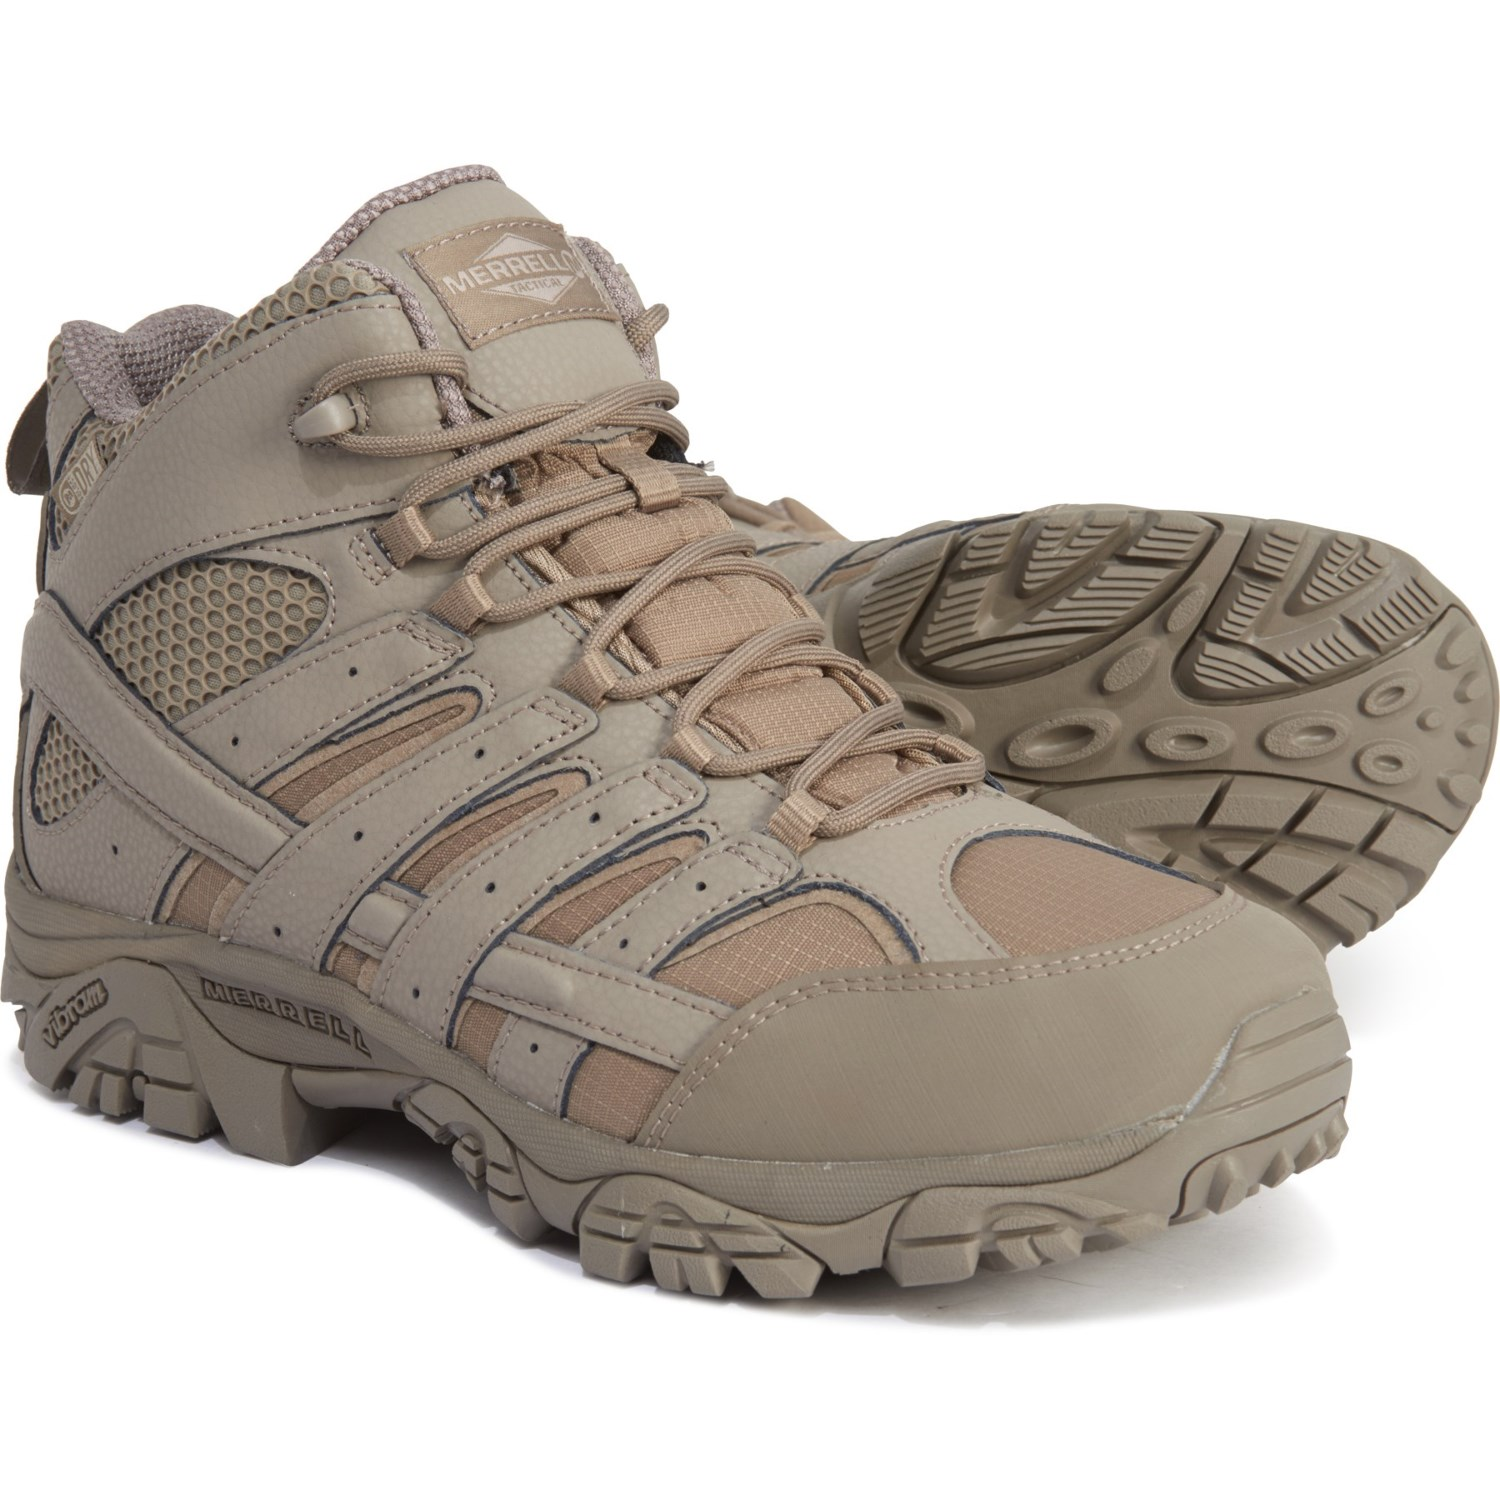 29410719285 Merrell Moab 2 Mid Tactical Boots (For Men) - Save 38%